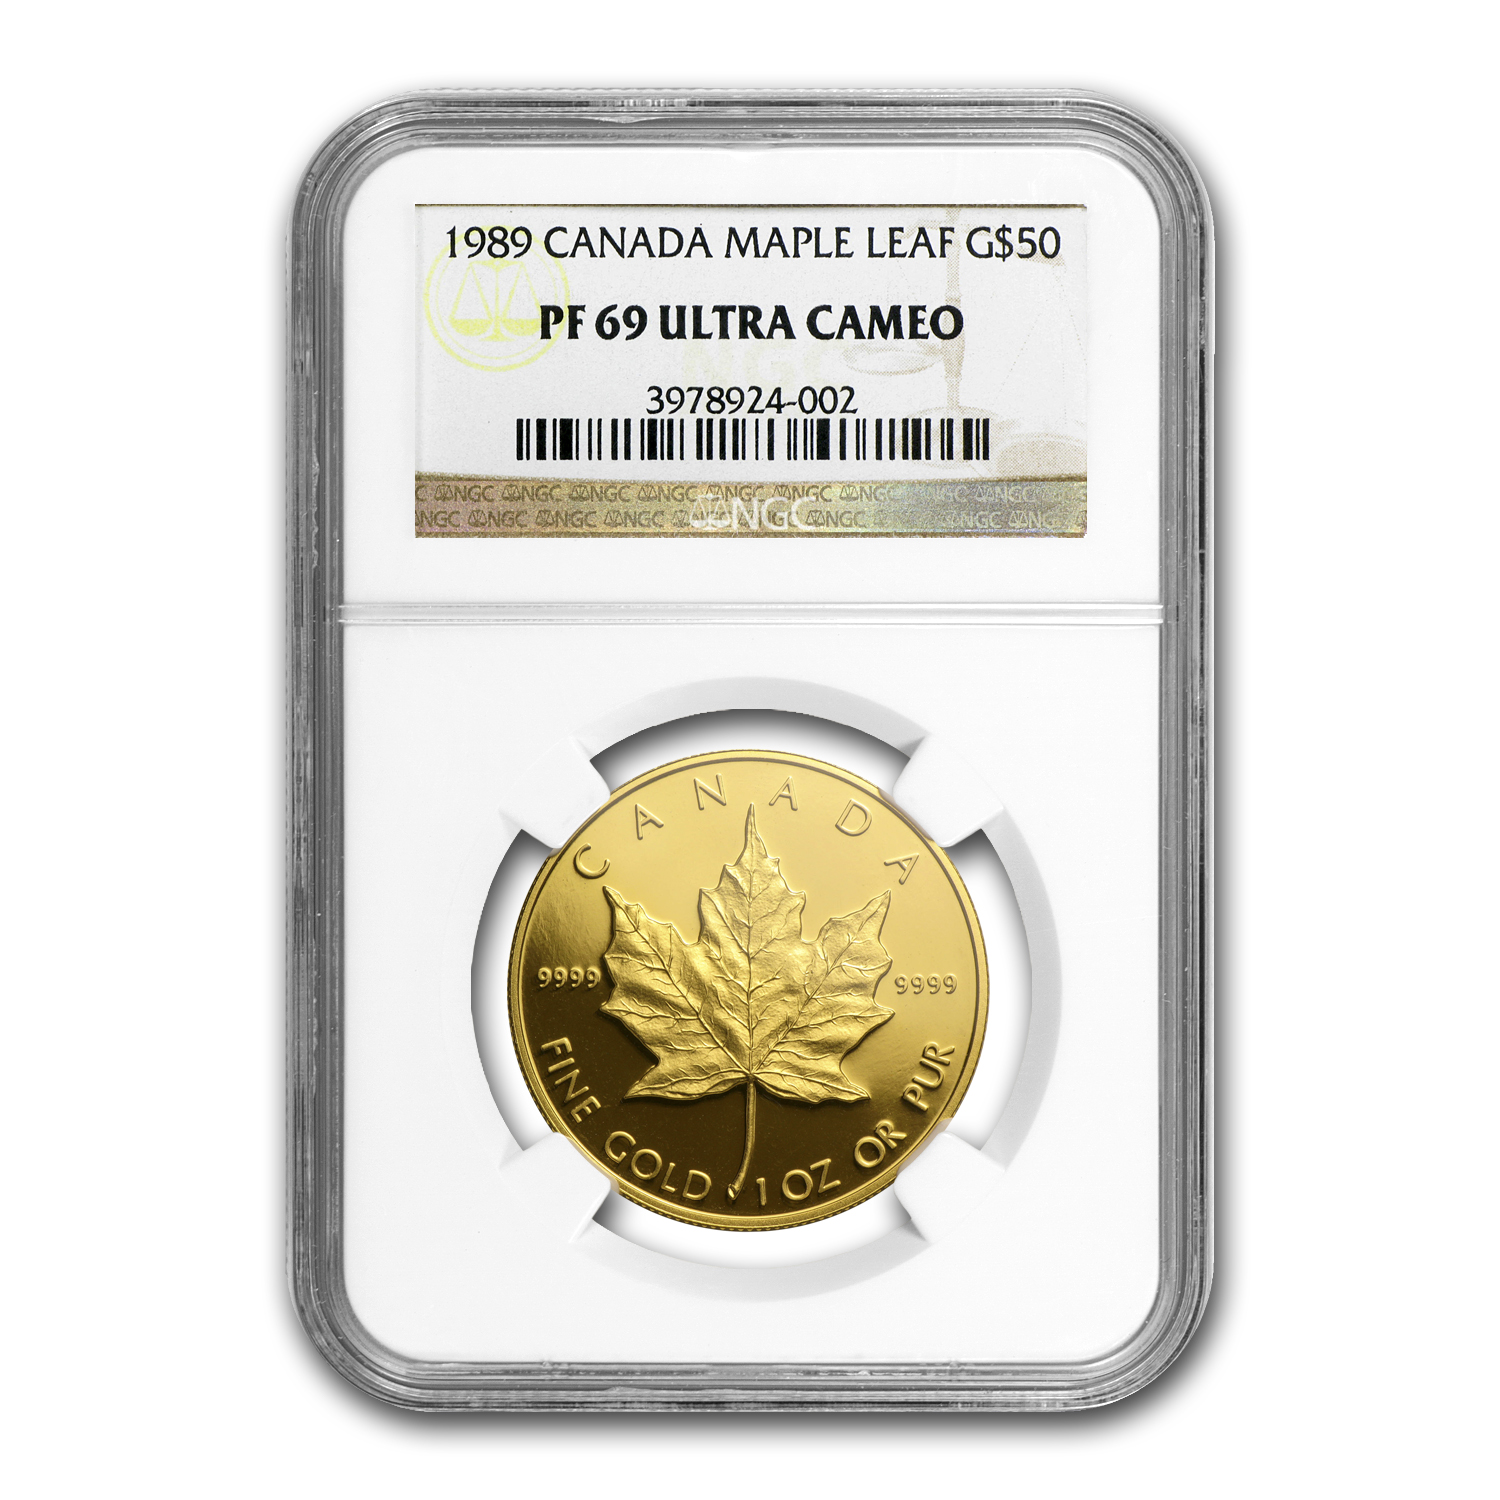 1989 1 oz Proof Gold Canadian Maple Leaf NGC PF-69 UCAM